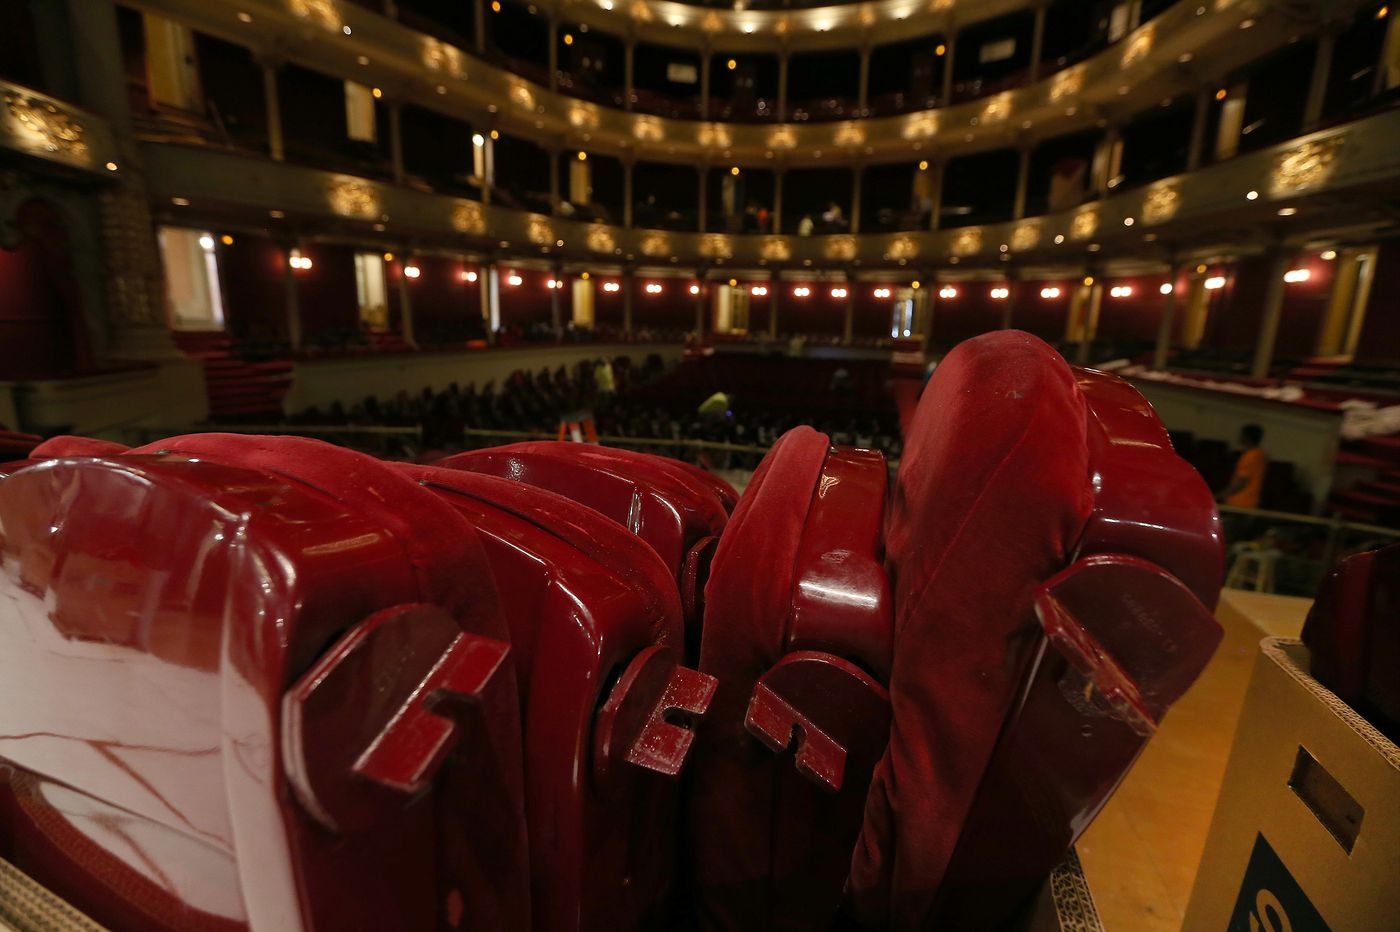 Academy of Music is replacing its lumpy old seats — and, no, you're not getting cup holders